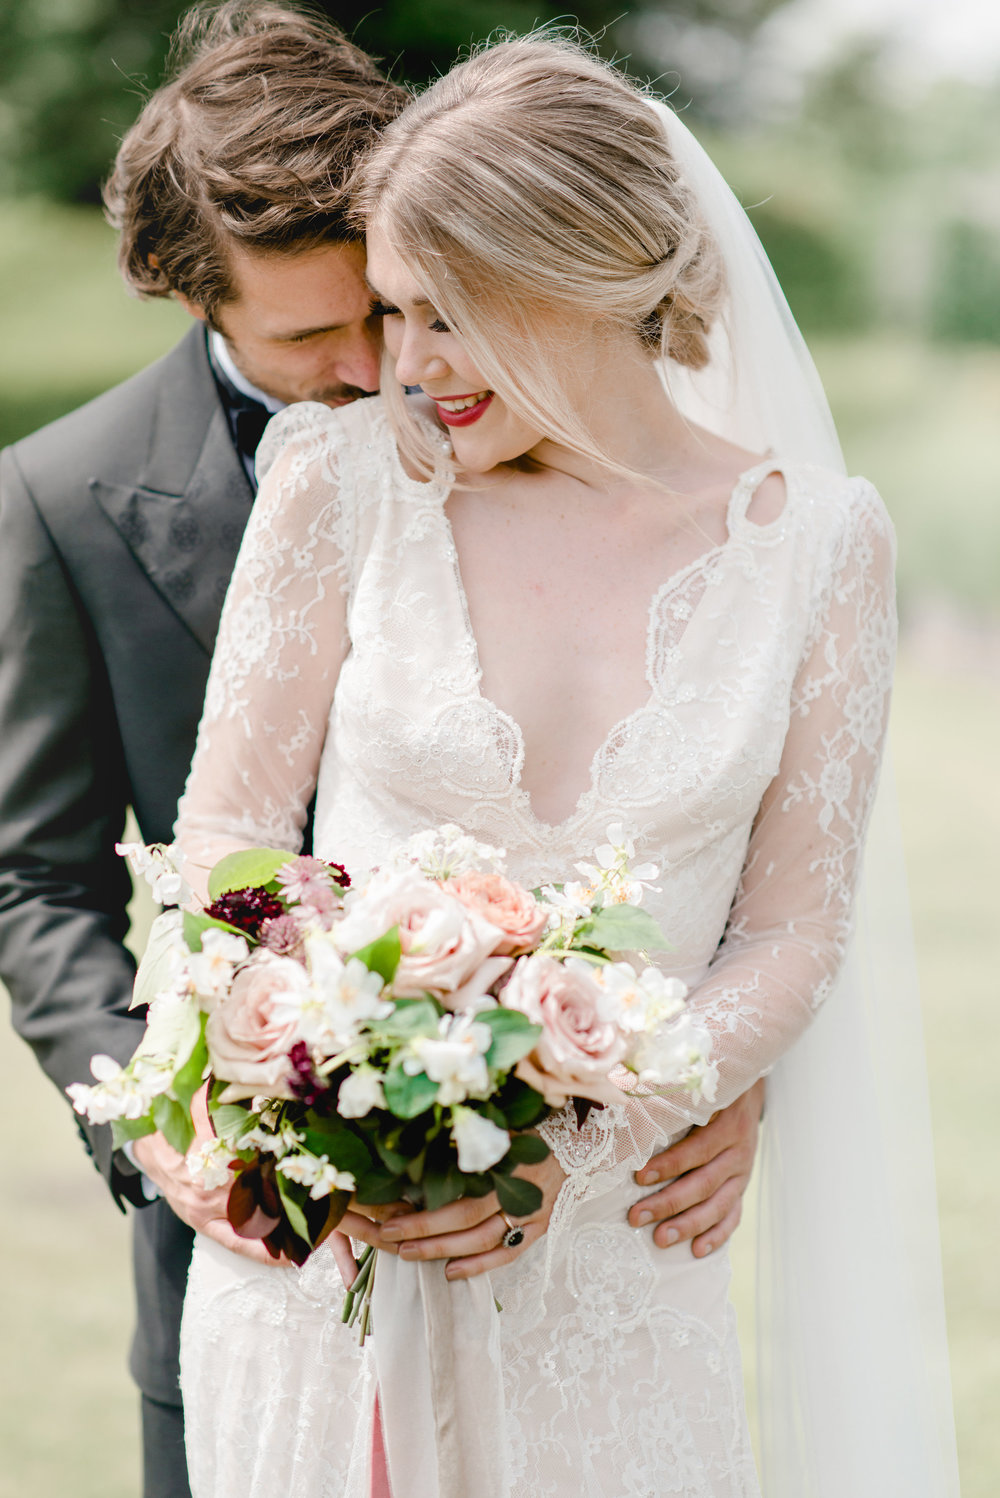 The Timeless Stylist-Elegant and Romantic Wedding Styling-Bride and Groom